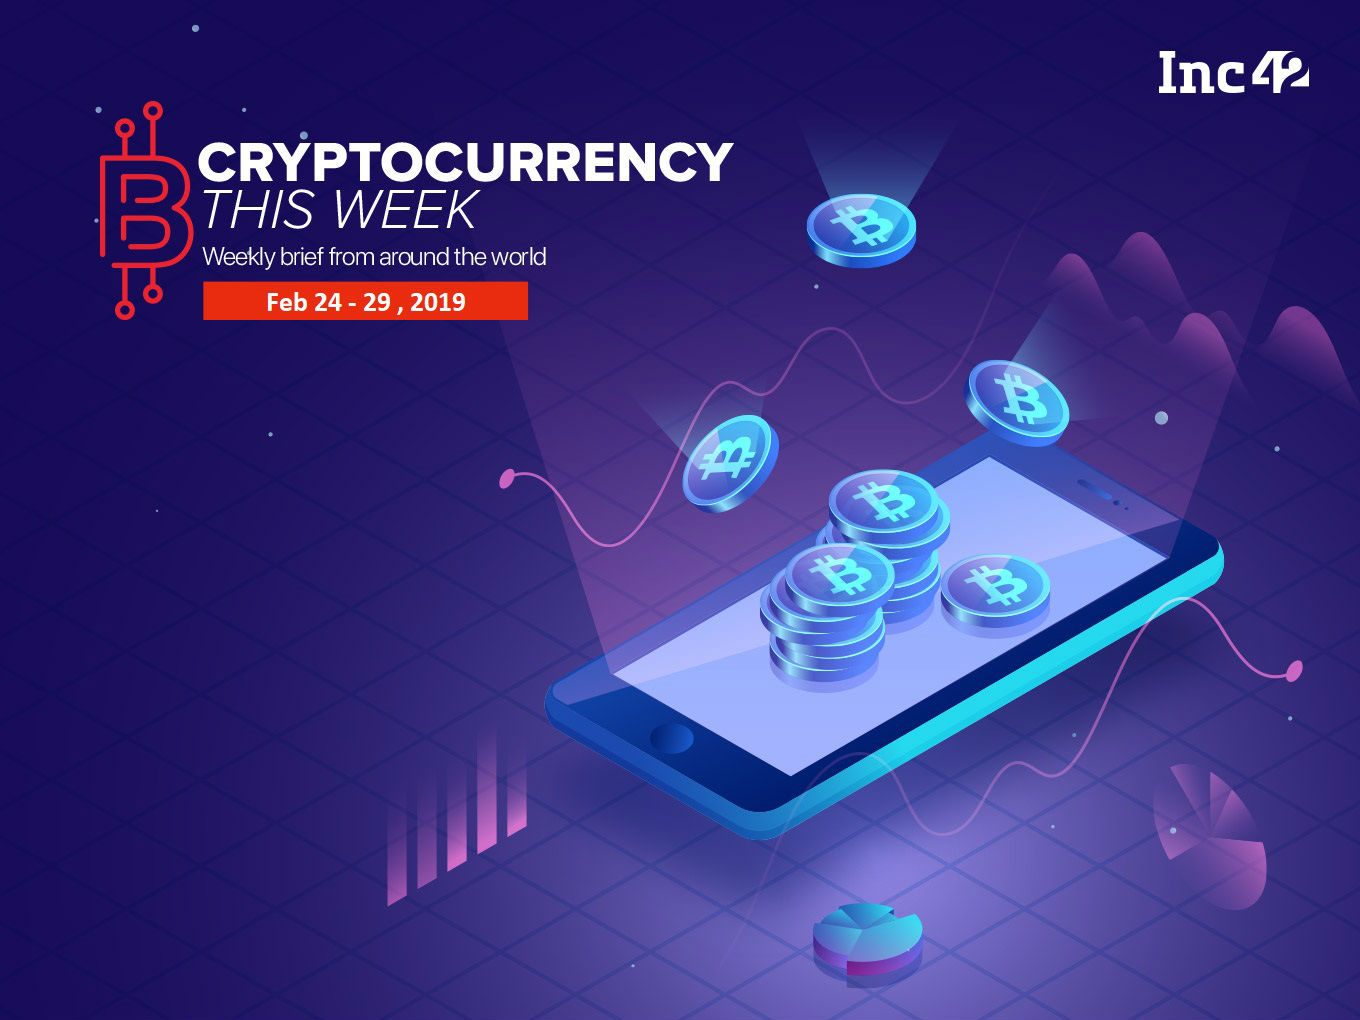 Cryptocurrency This Week: Indian Crypto Bulls Roadshow 2020, Buffett's CLarification On Bitcoin And More